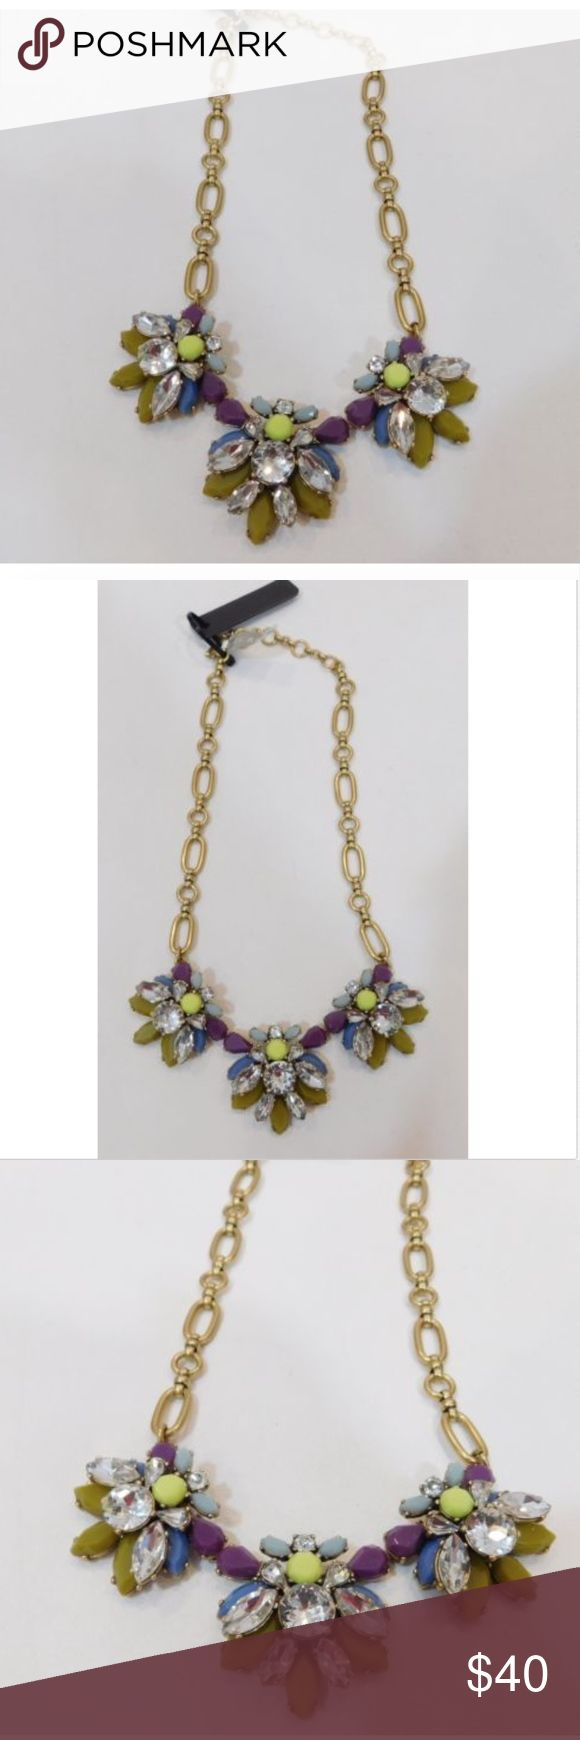 J Crew Women's Statement Floral Necklace Crystal NWT J Crew Statement Floral Necklace  Color: Purple, Yellow, Blue, Clear Crystals   Description:   Classic style statement necklace with crystals and colorful stones. Pair with your favorite dressy dress or do something a little more fun and wear with a t-shirt. Always takes your outfit up a notch! J Crew Jewelry Necklaces